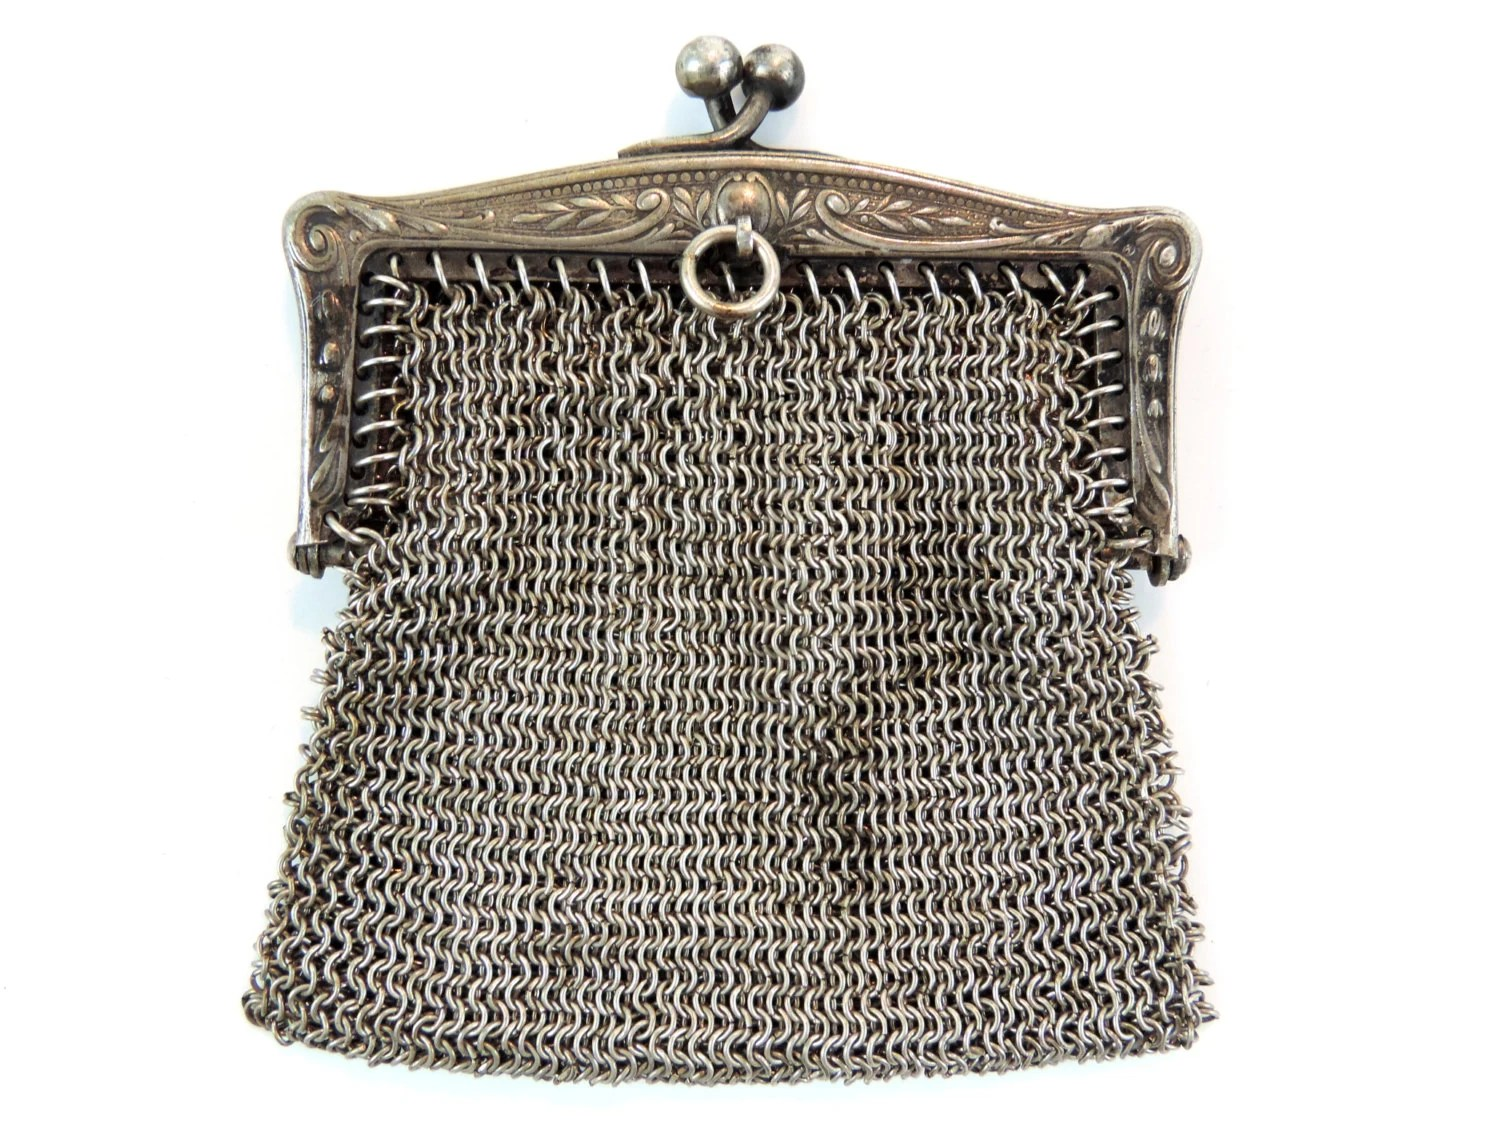 Le Meilleur French Vintage Small Chatelaine Coin Purse French Vintage Ce Mois Ci